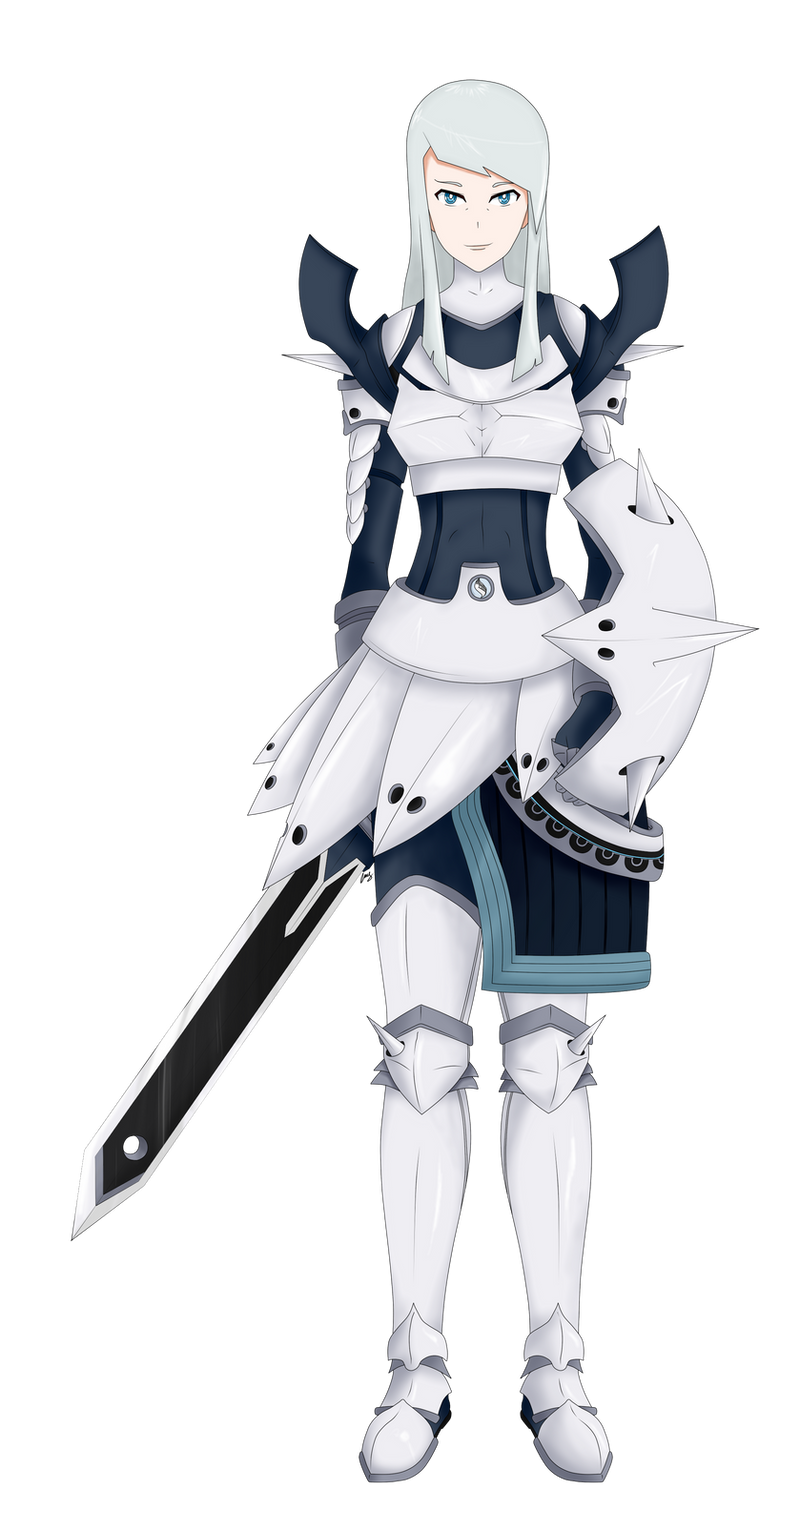 Mega Aggron Gijinka by kiket20 on DeviantArt